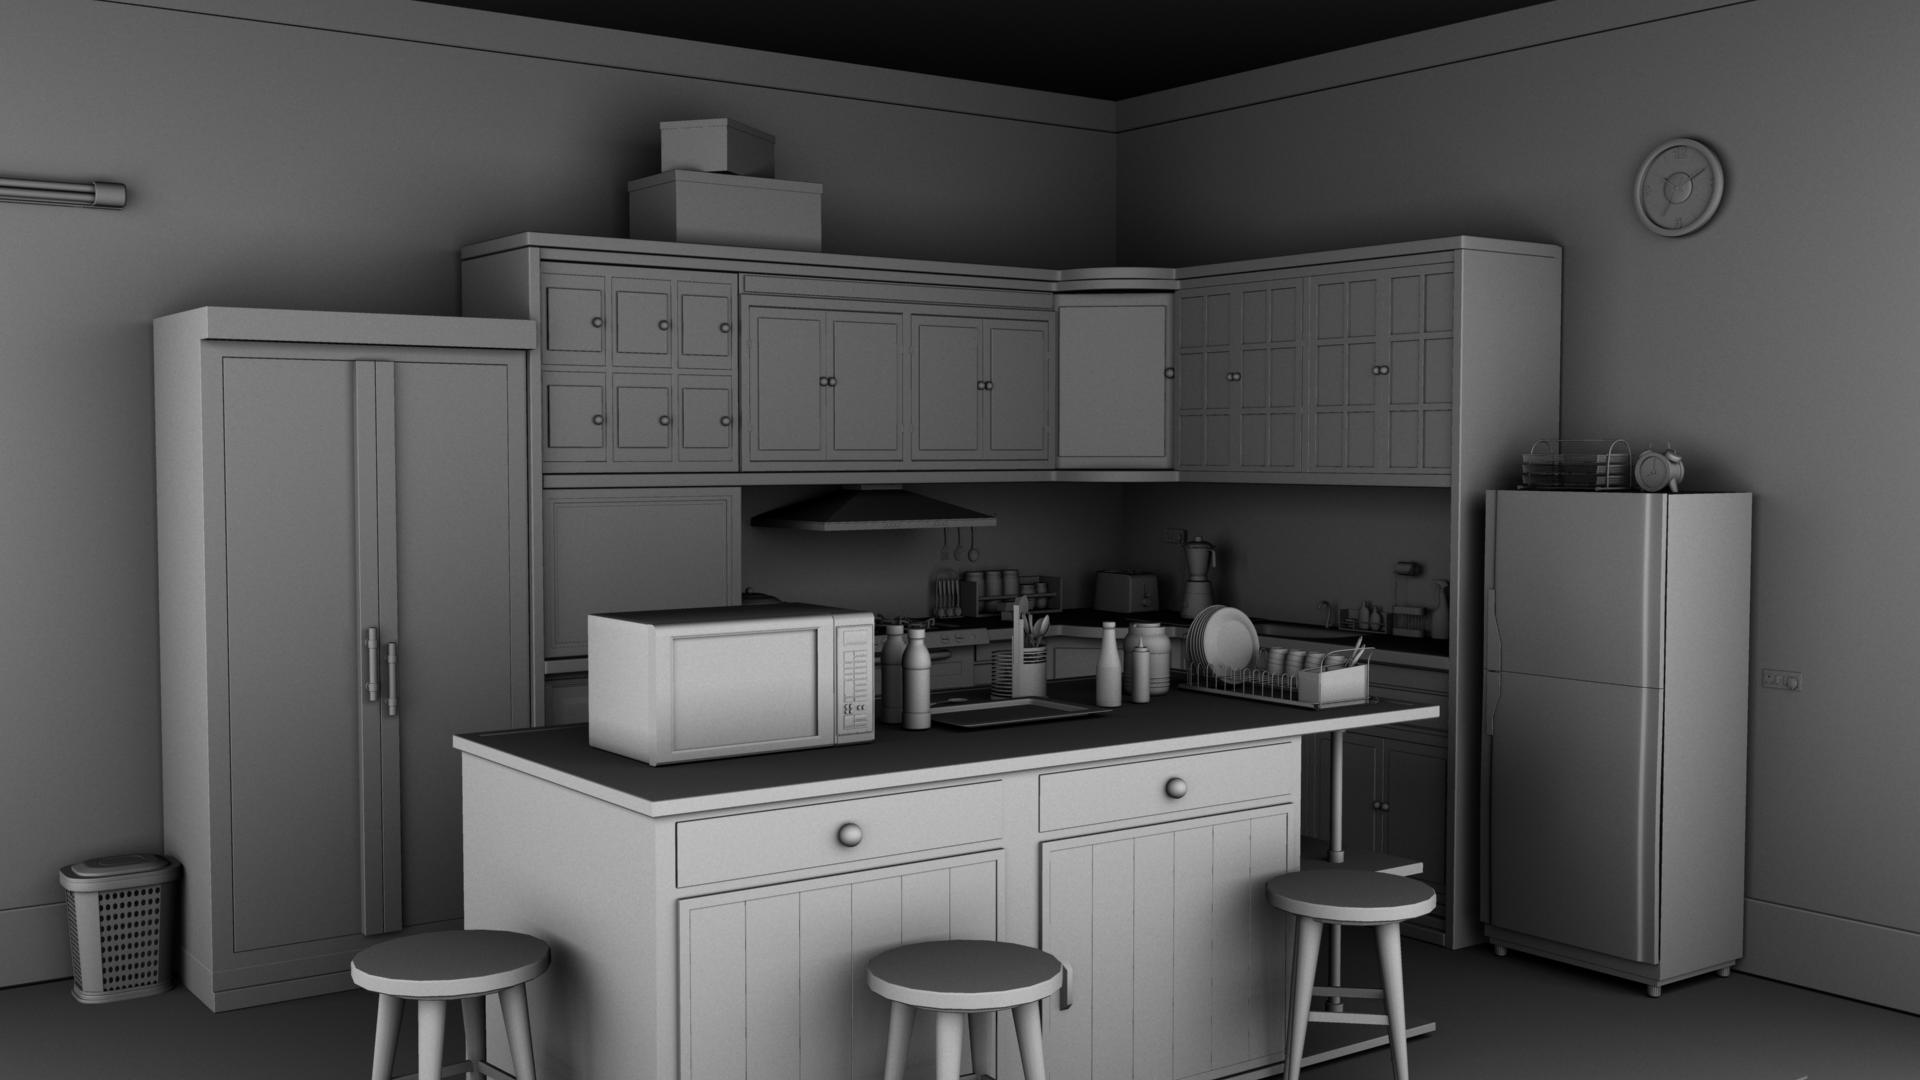 Kitchen 3d model buy kitchen 3d model flatpyramid for Model kitchen images